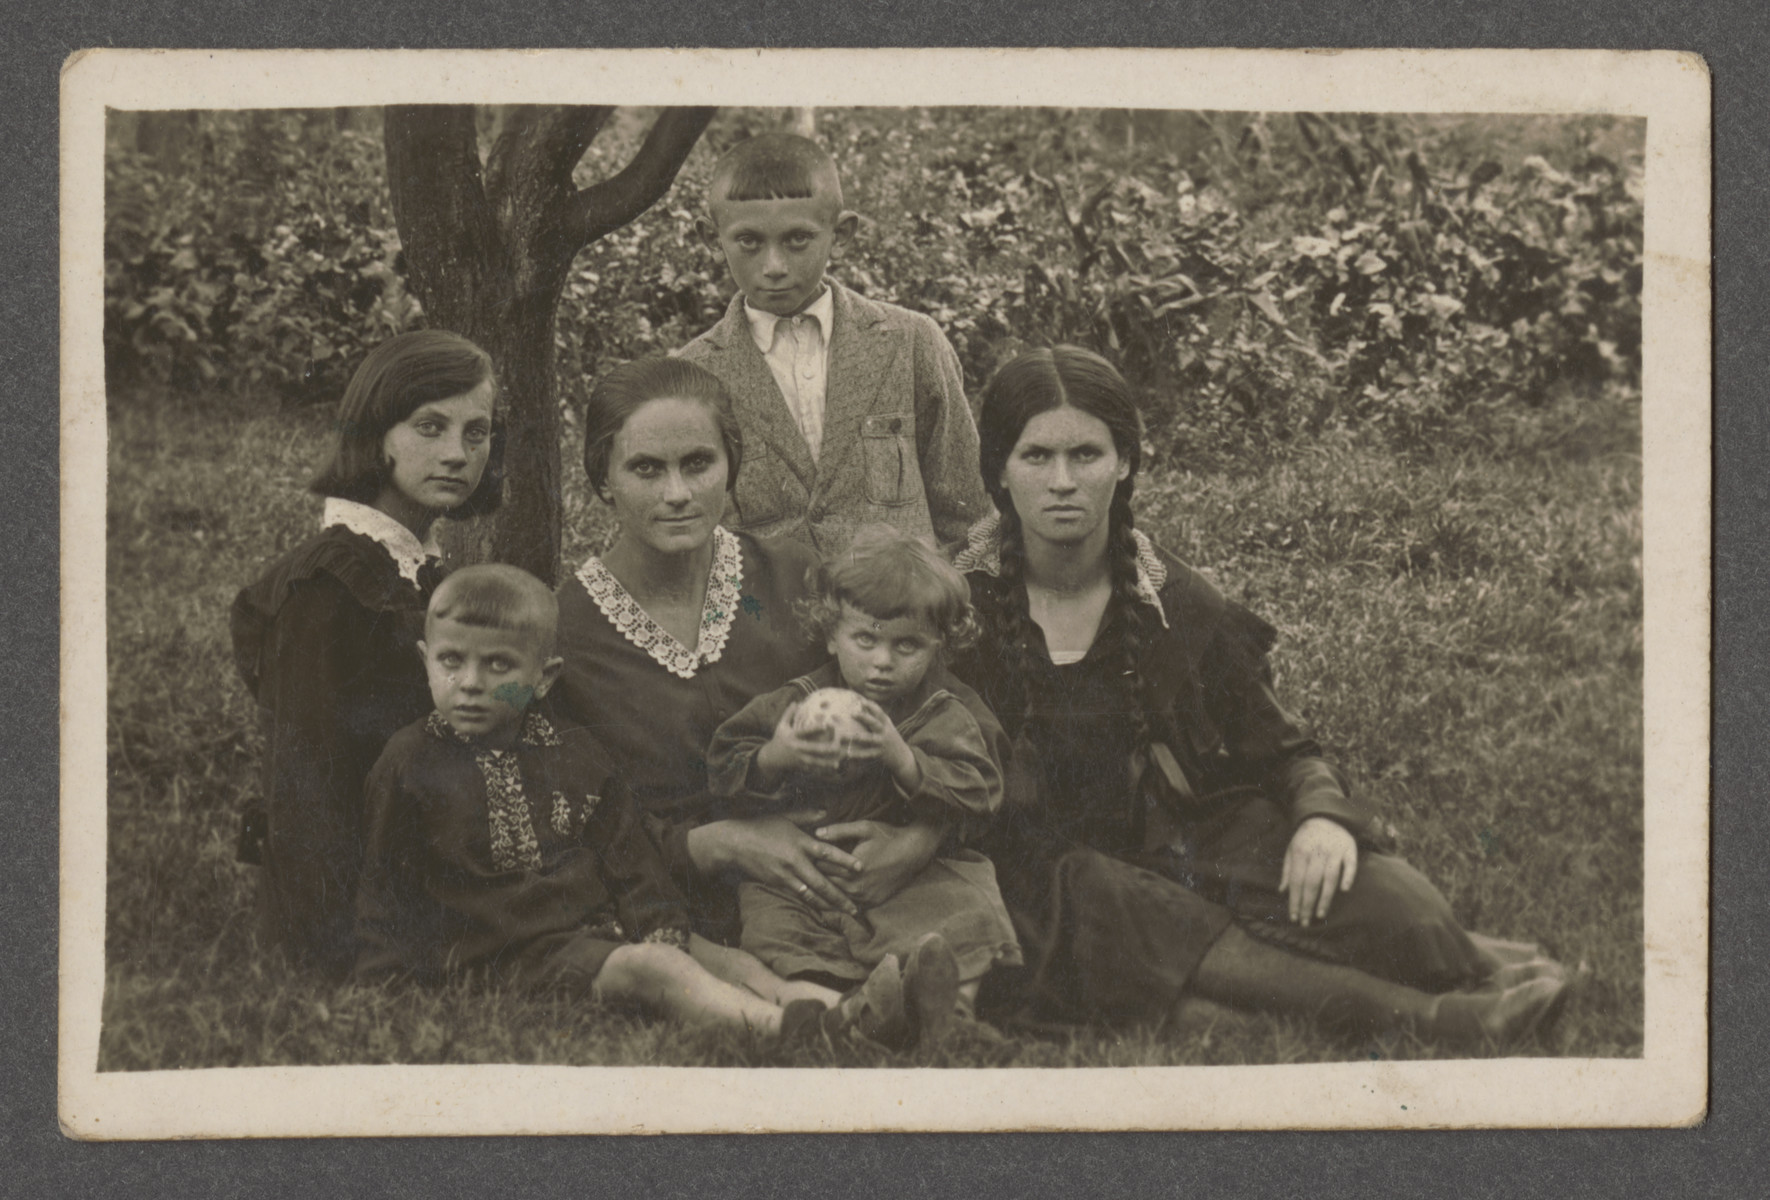 The Sczwarczman family poses outside in prewar Aleksandria.  Pictured from left to right are the Scwarczman siblings Fania, Rosa, Boris and Sonia.  Pictured in front are Rosa's two children .